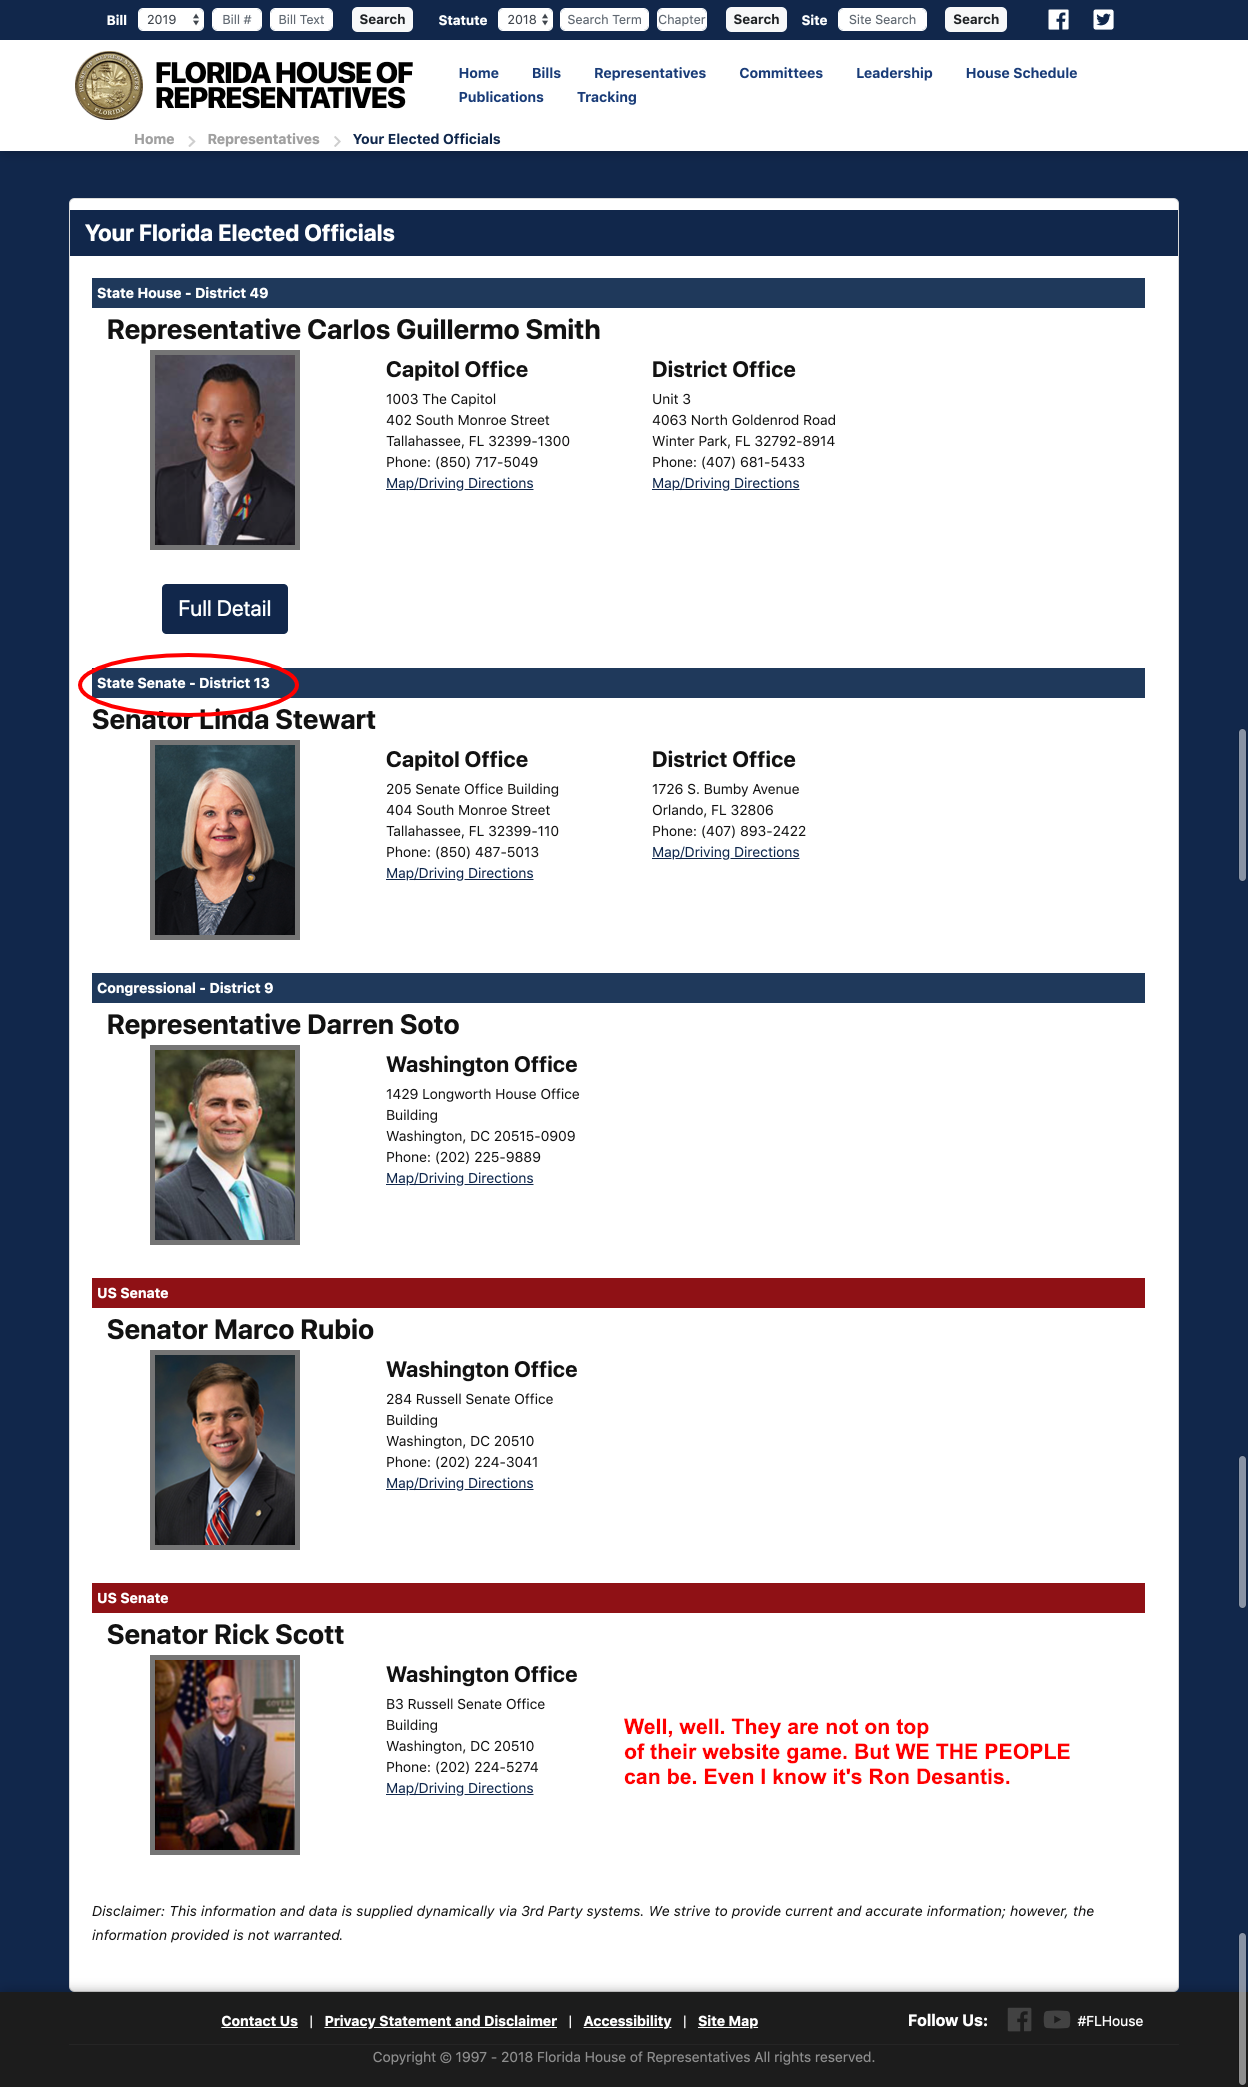 That's what's up! I am tracking the lady circled in my  Florida Senate  account. We got new faces and old faces. Looks like they haven't updated the governor yet. SMH